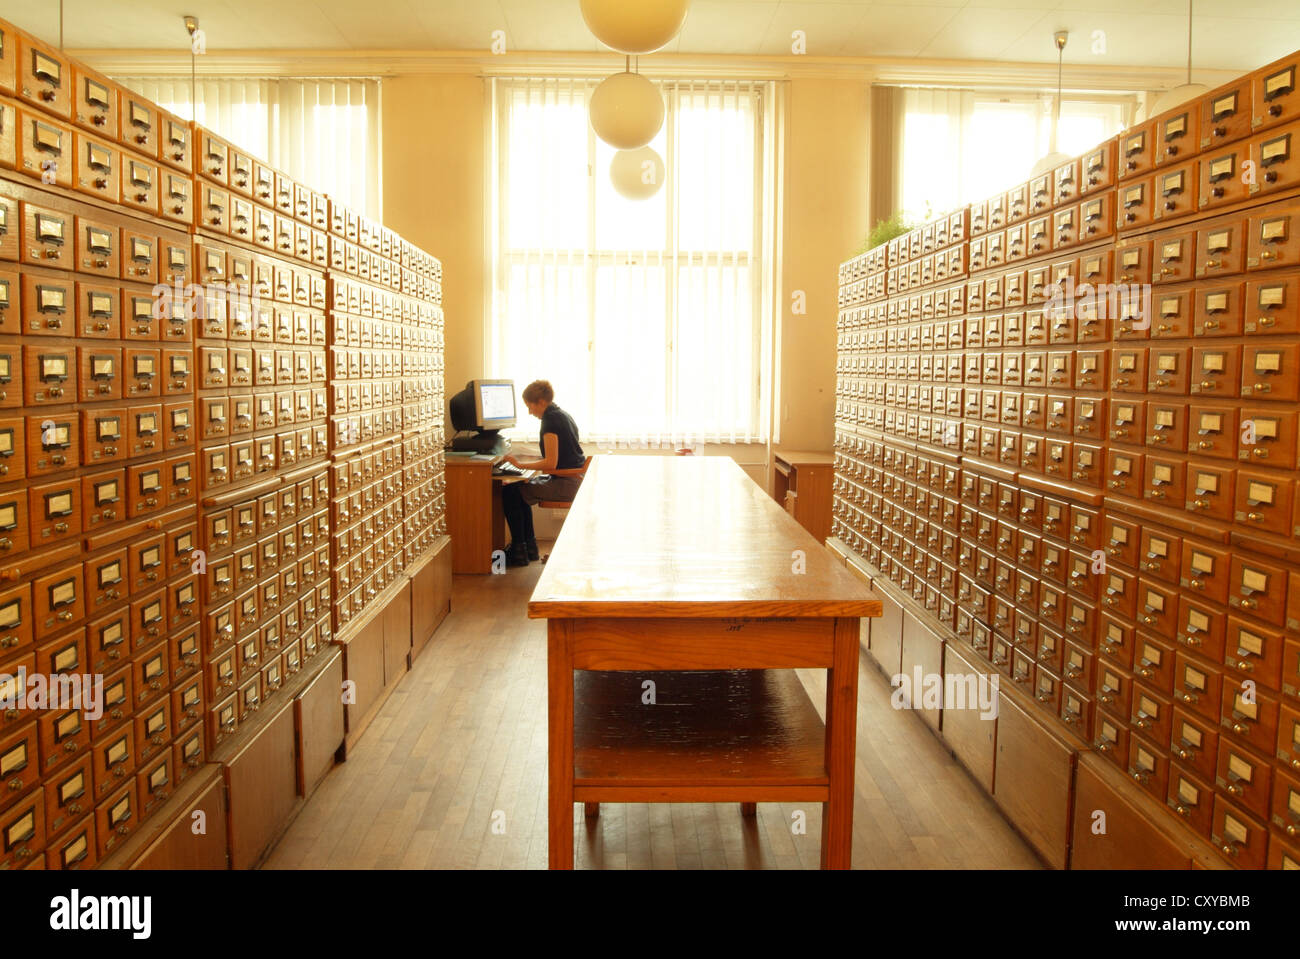 Filing cabinets in a university library Stock Photo